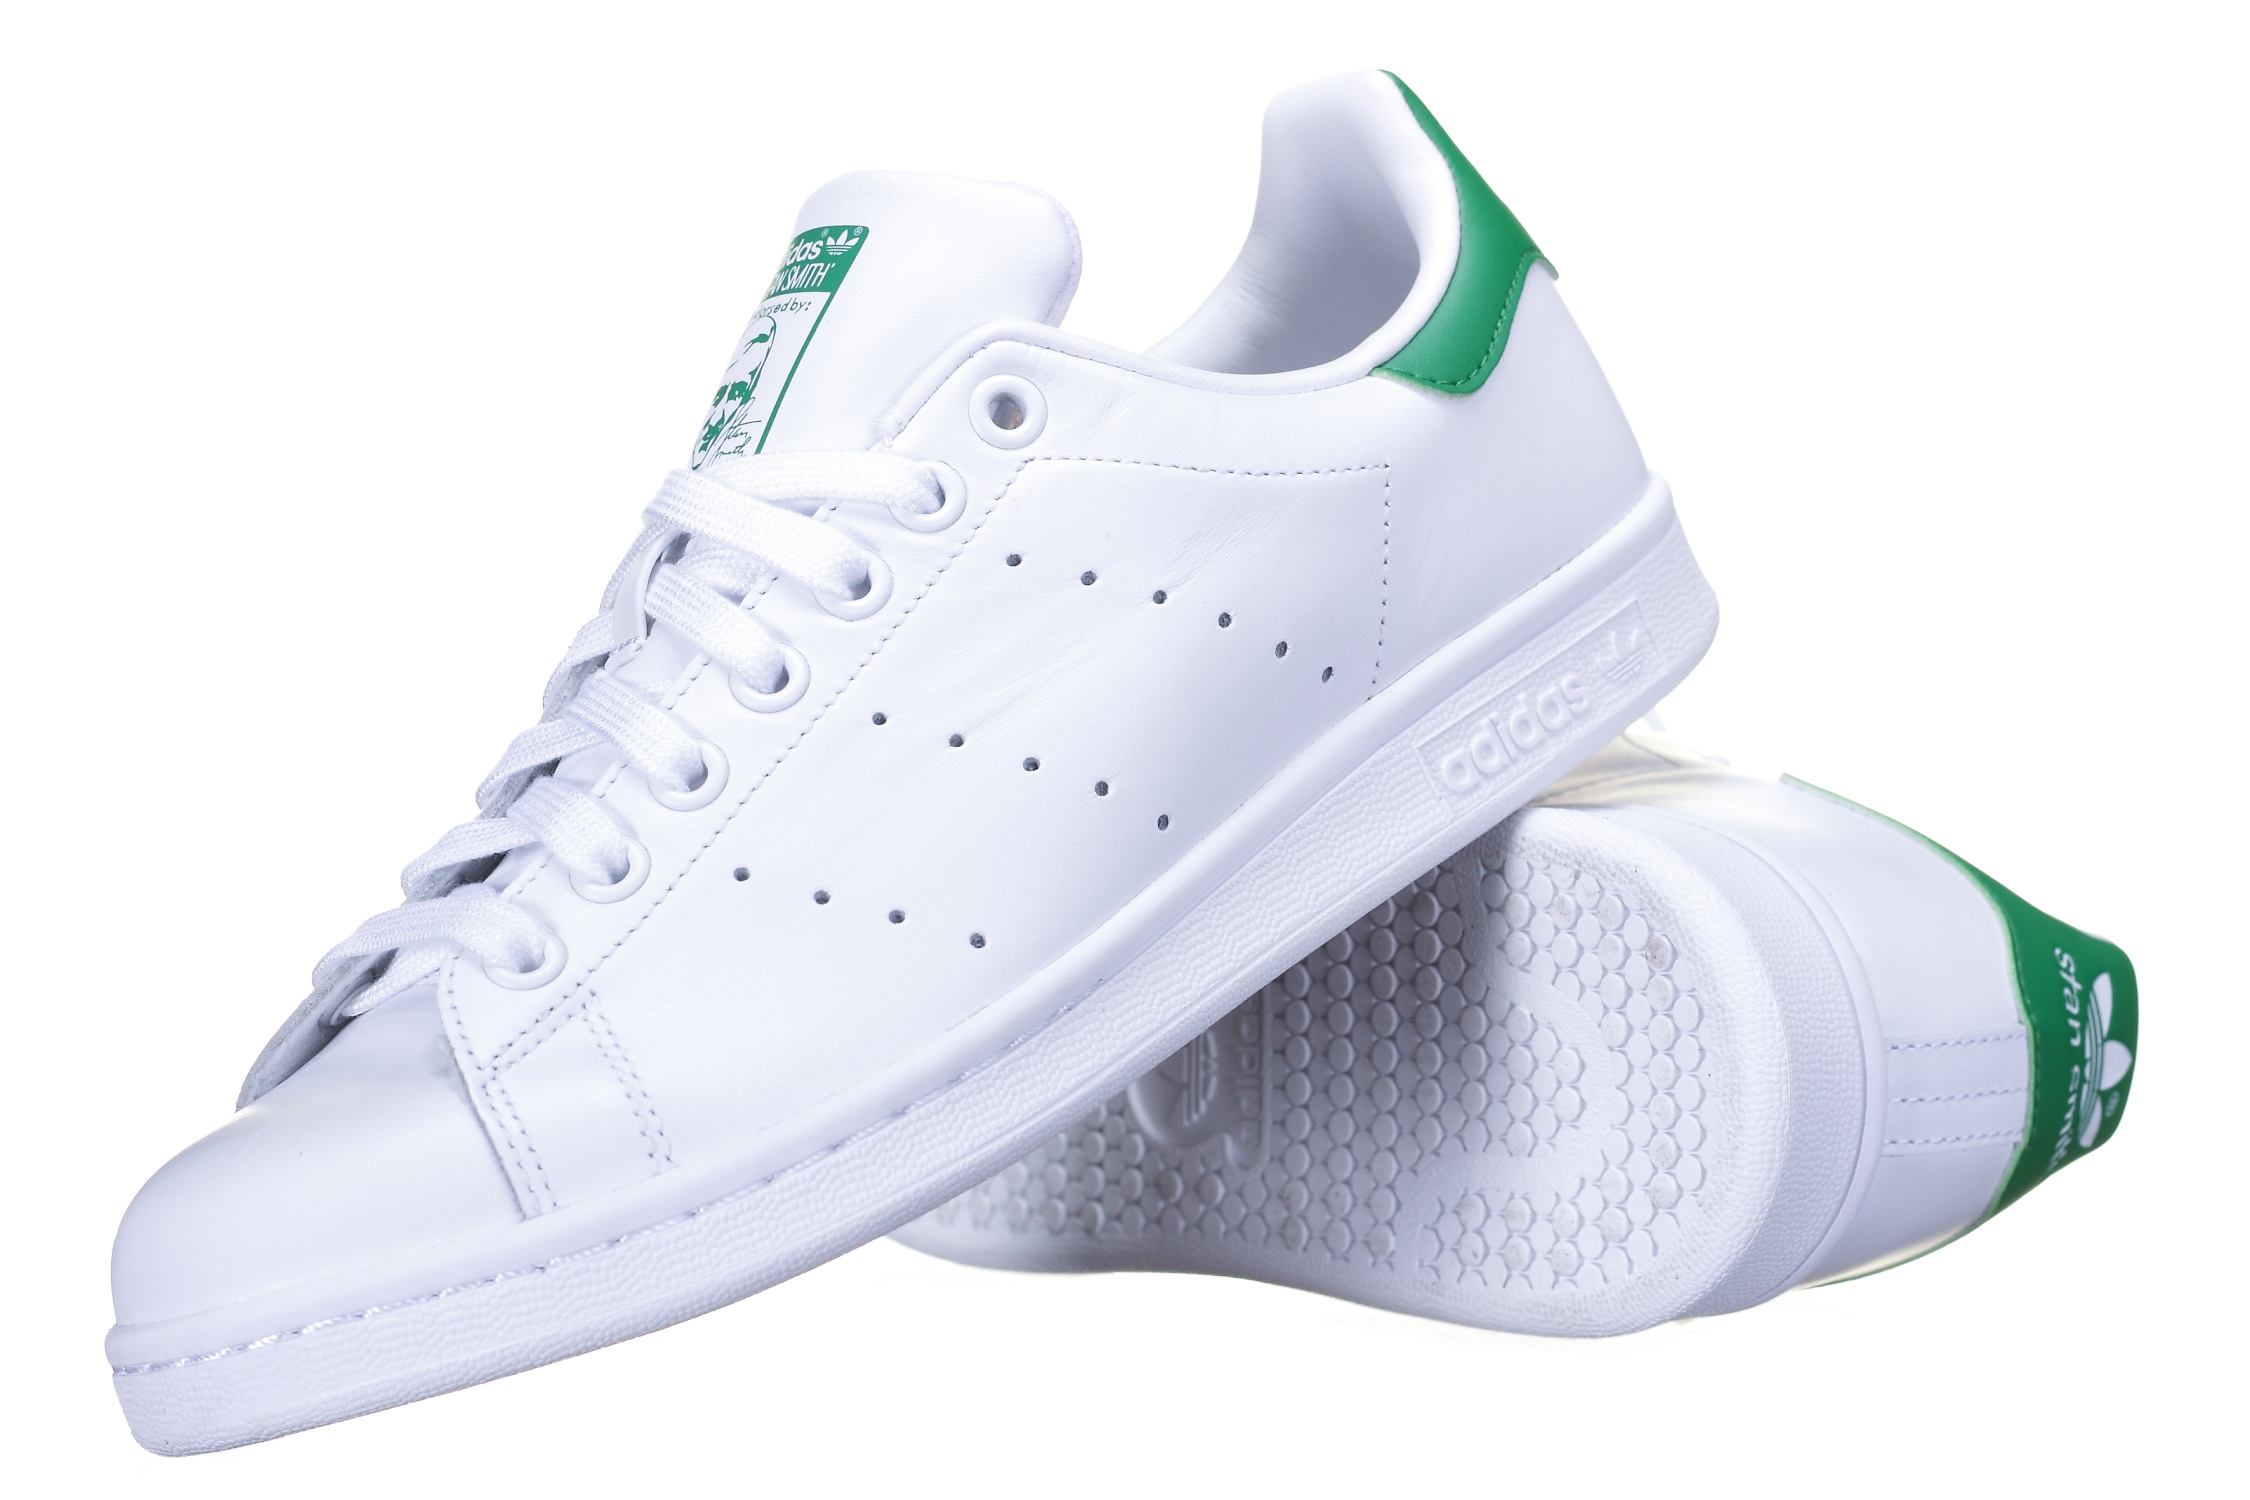 http://www.leadermode.com/70900/adidas-stan-smith-blanc-vert.jpg